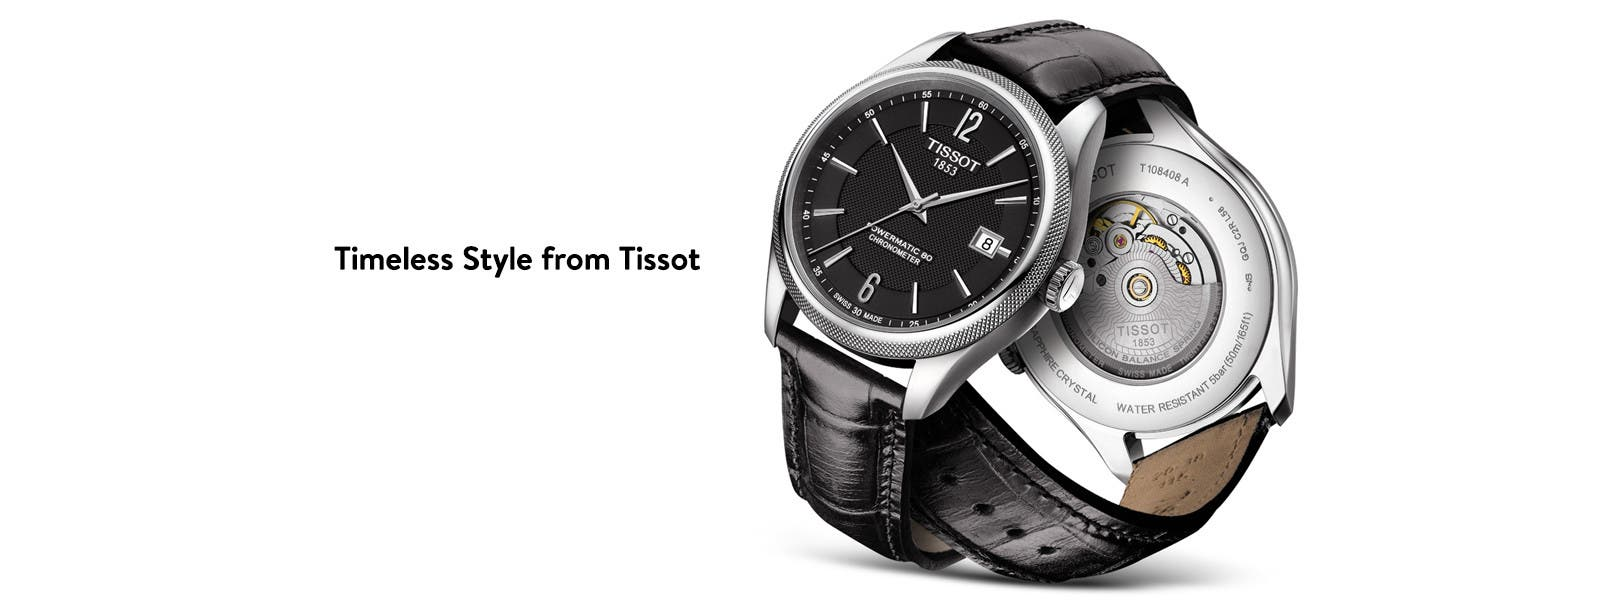 Timeless Style from Tissot